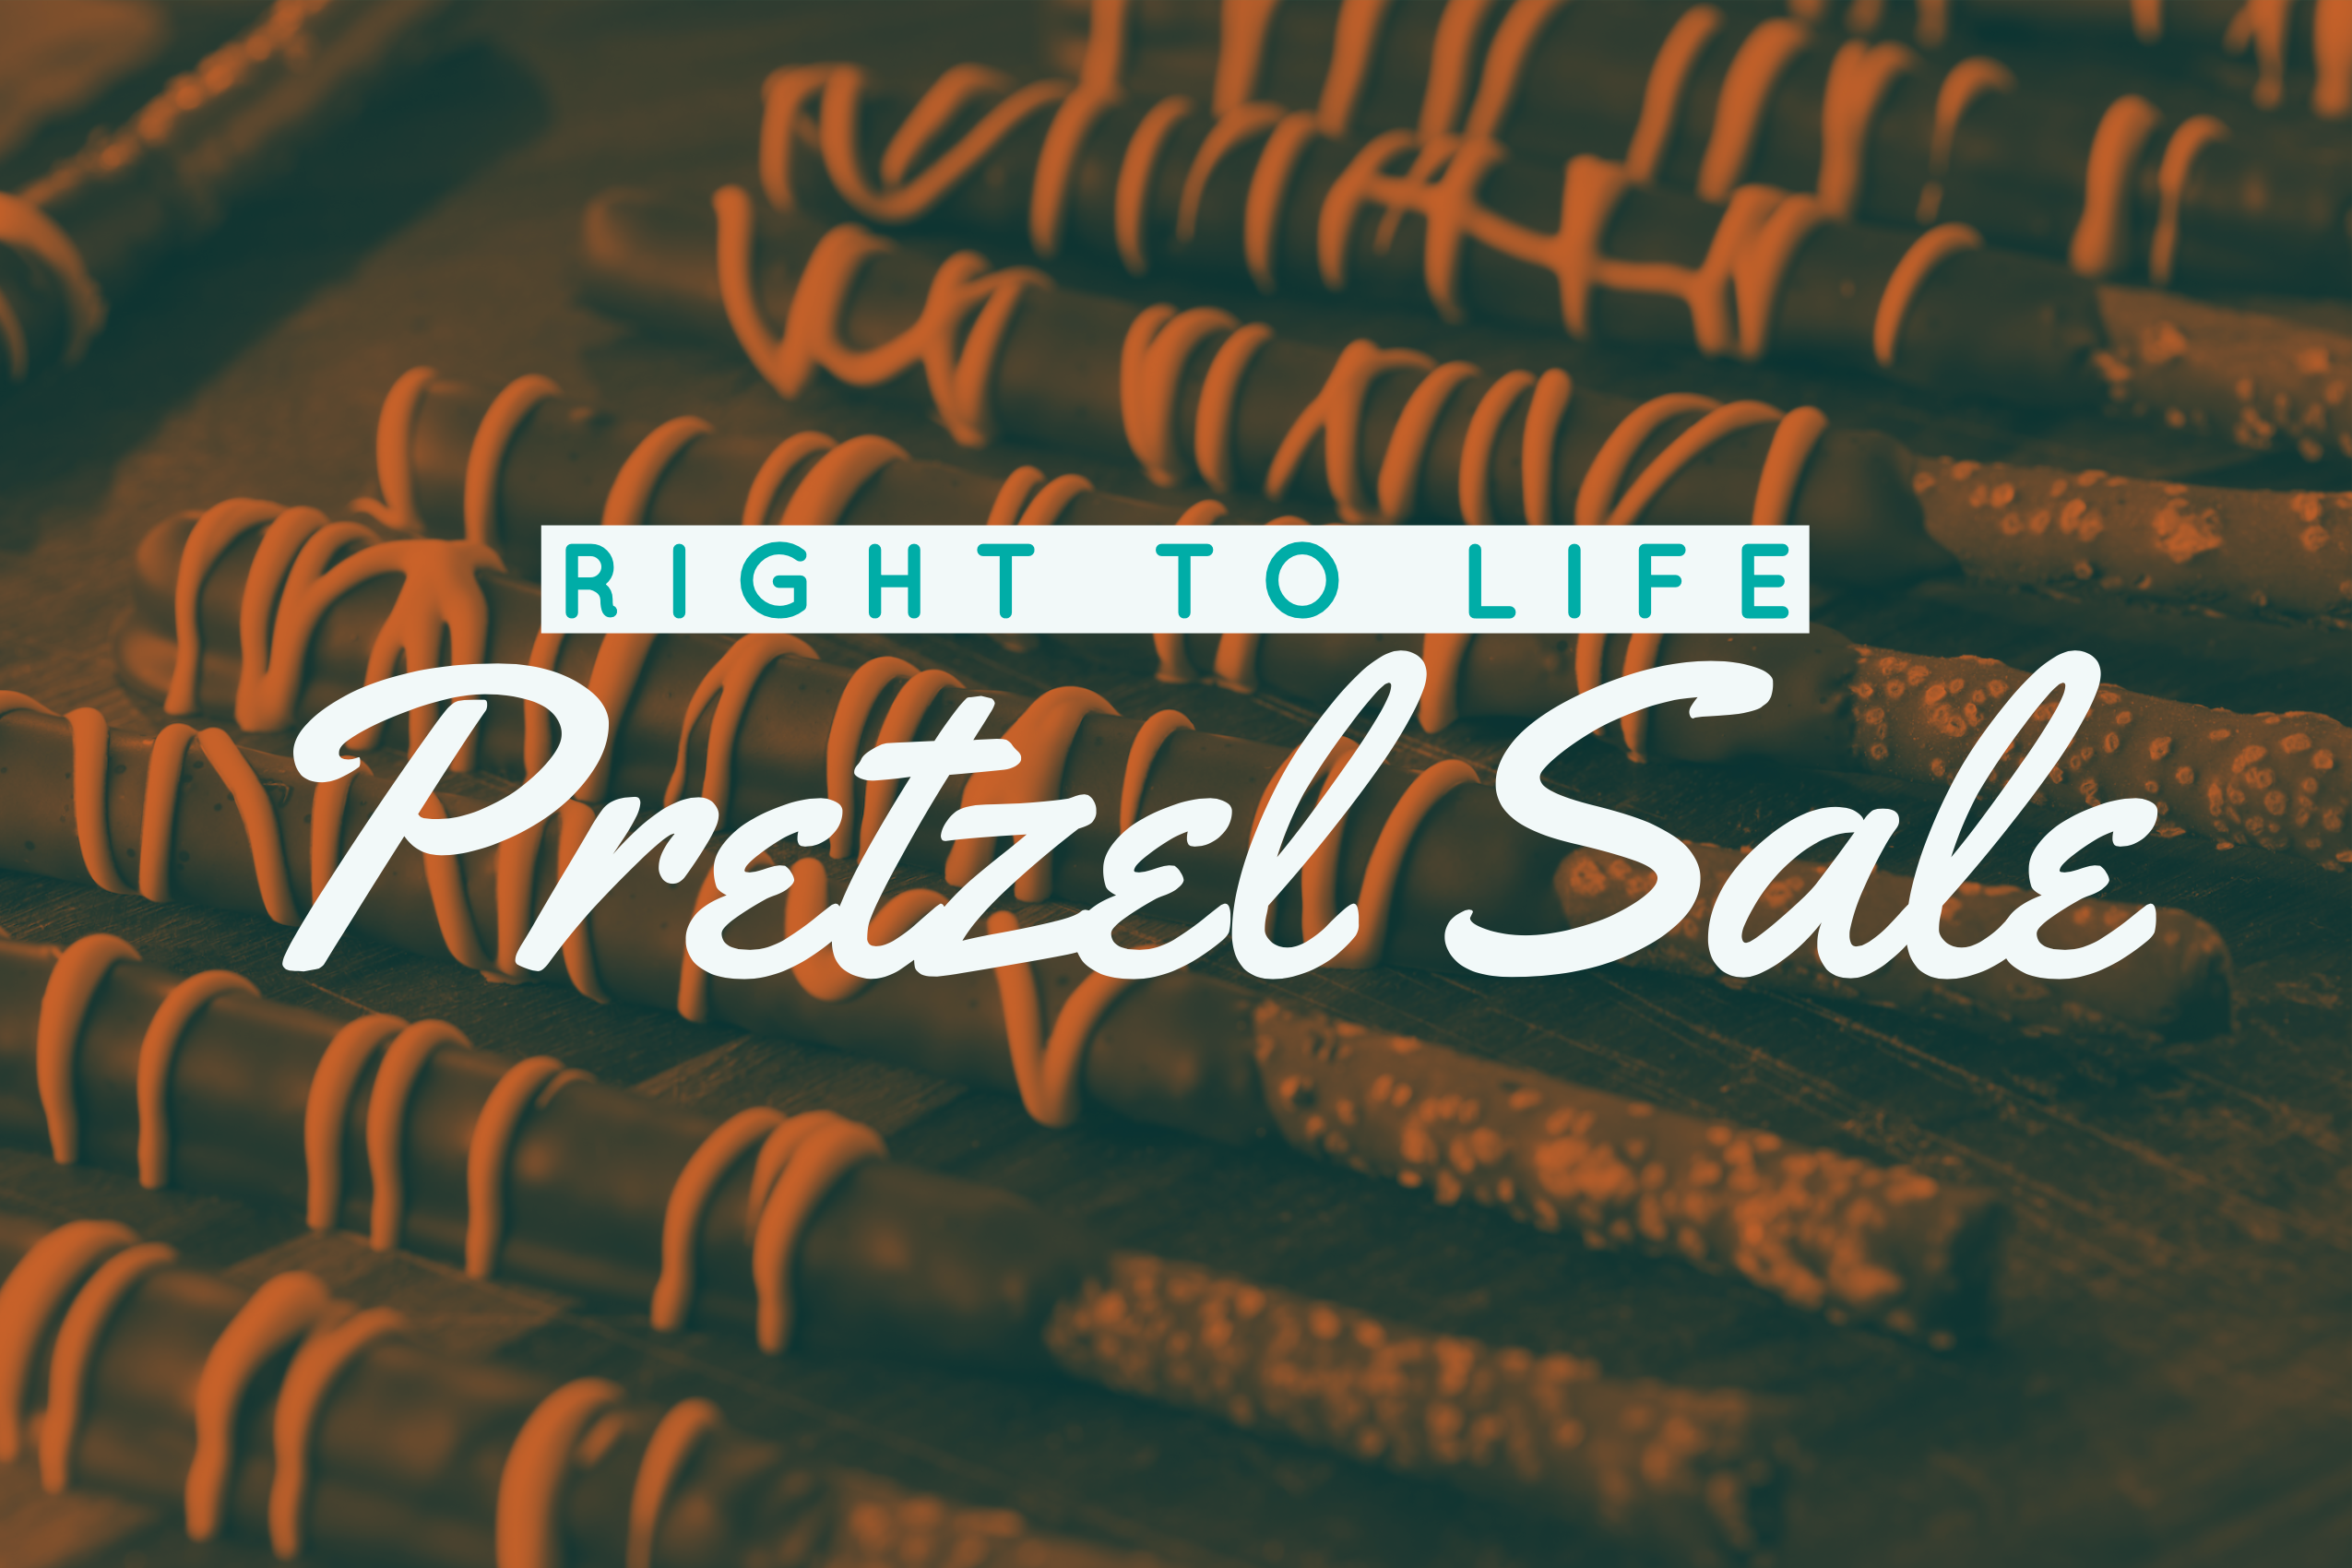 Right to Life Pretzel Sale